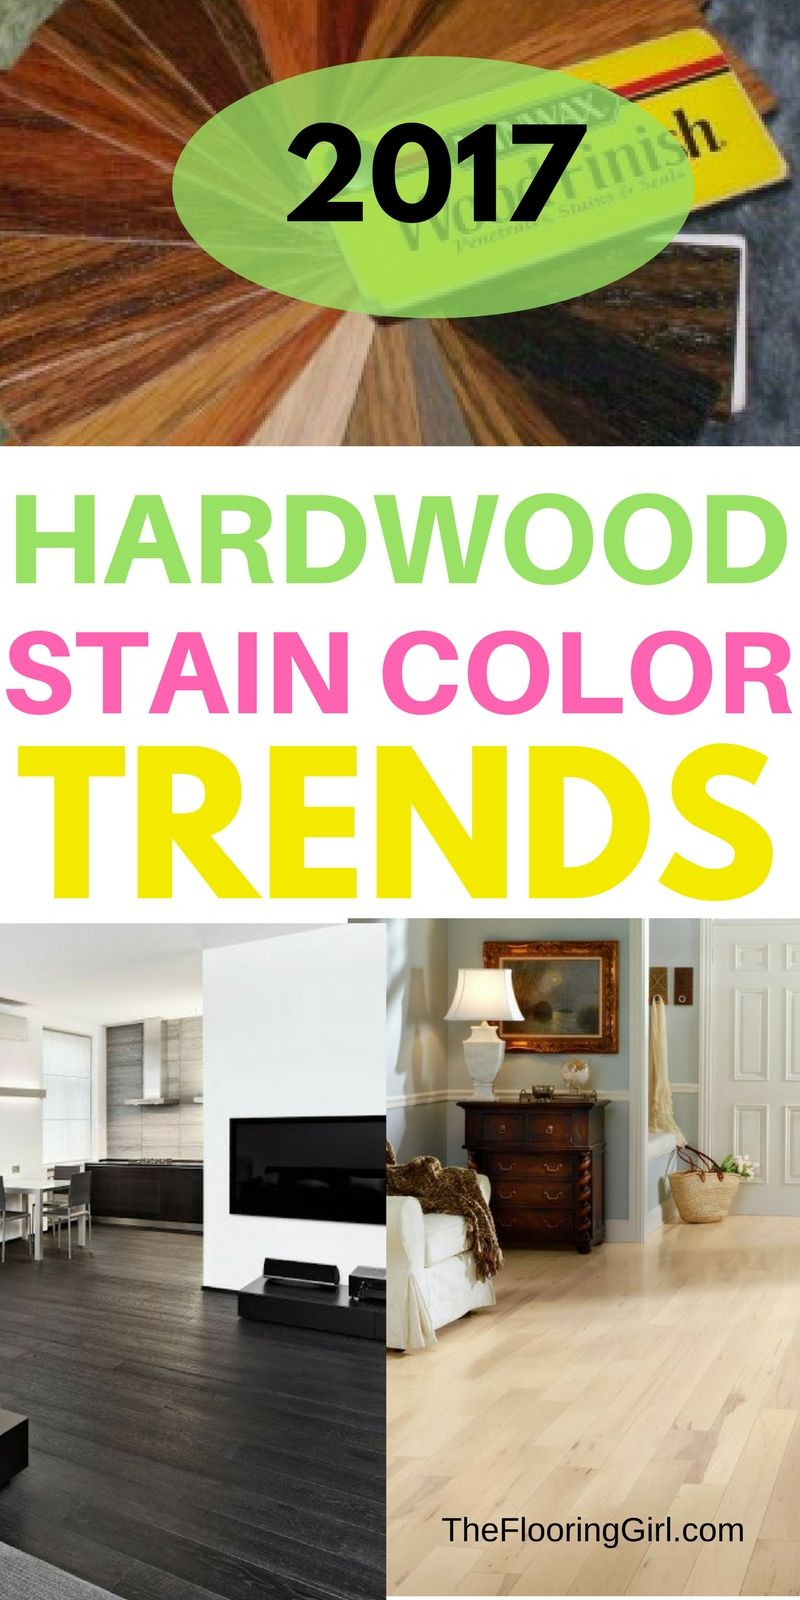 homes with dark hardwood floors of hardwood flooring stain color trends 2018 more from the flooring inside hardwood flooring stain color trends for 2017 hardwood colors that are in style theflooringgirl com